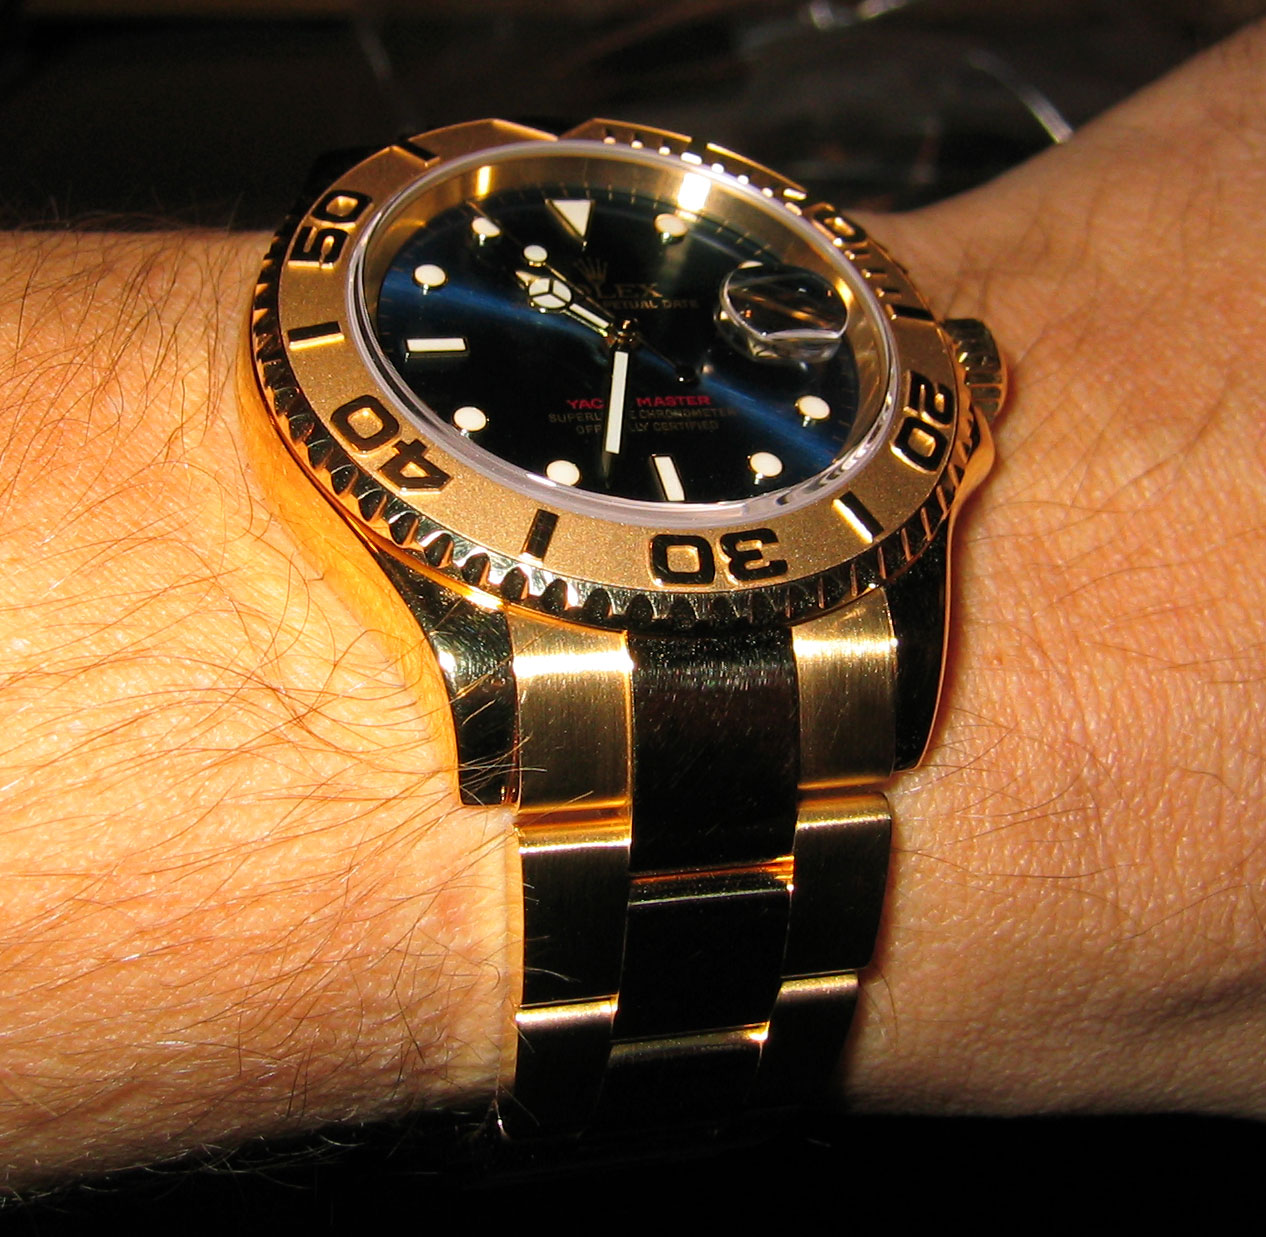 Rolex Yachtmaster Rose Gold On Wrist